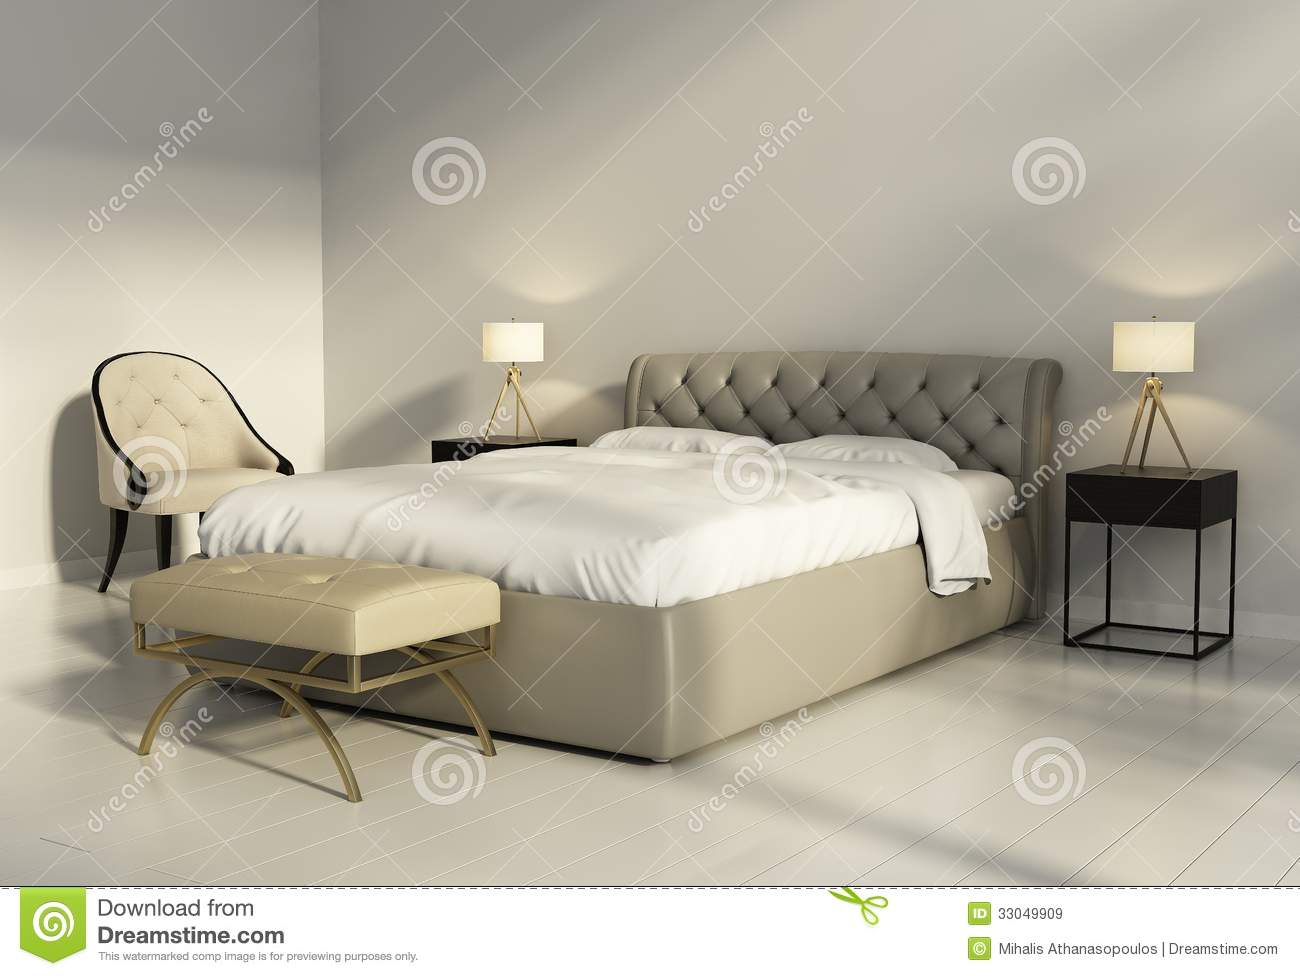 lit en cuir tuft chic dans la chambre coucher chic contemporaine image stock image 33049909. Black Bedroom Furniture Sets. Home Design Ideas